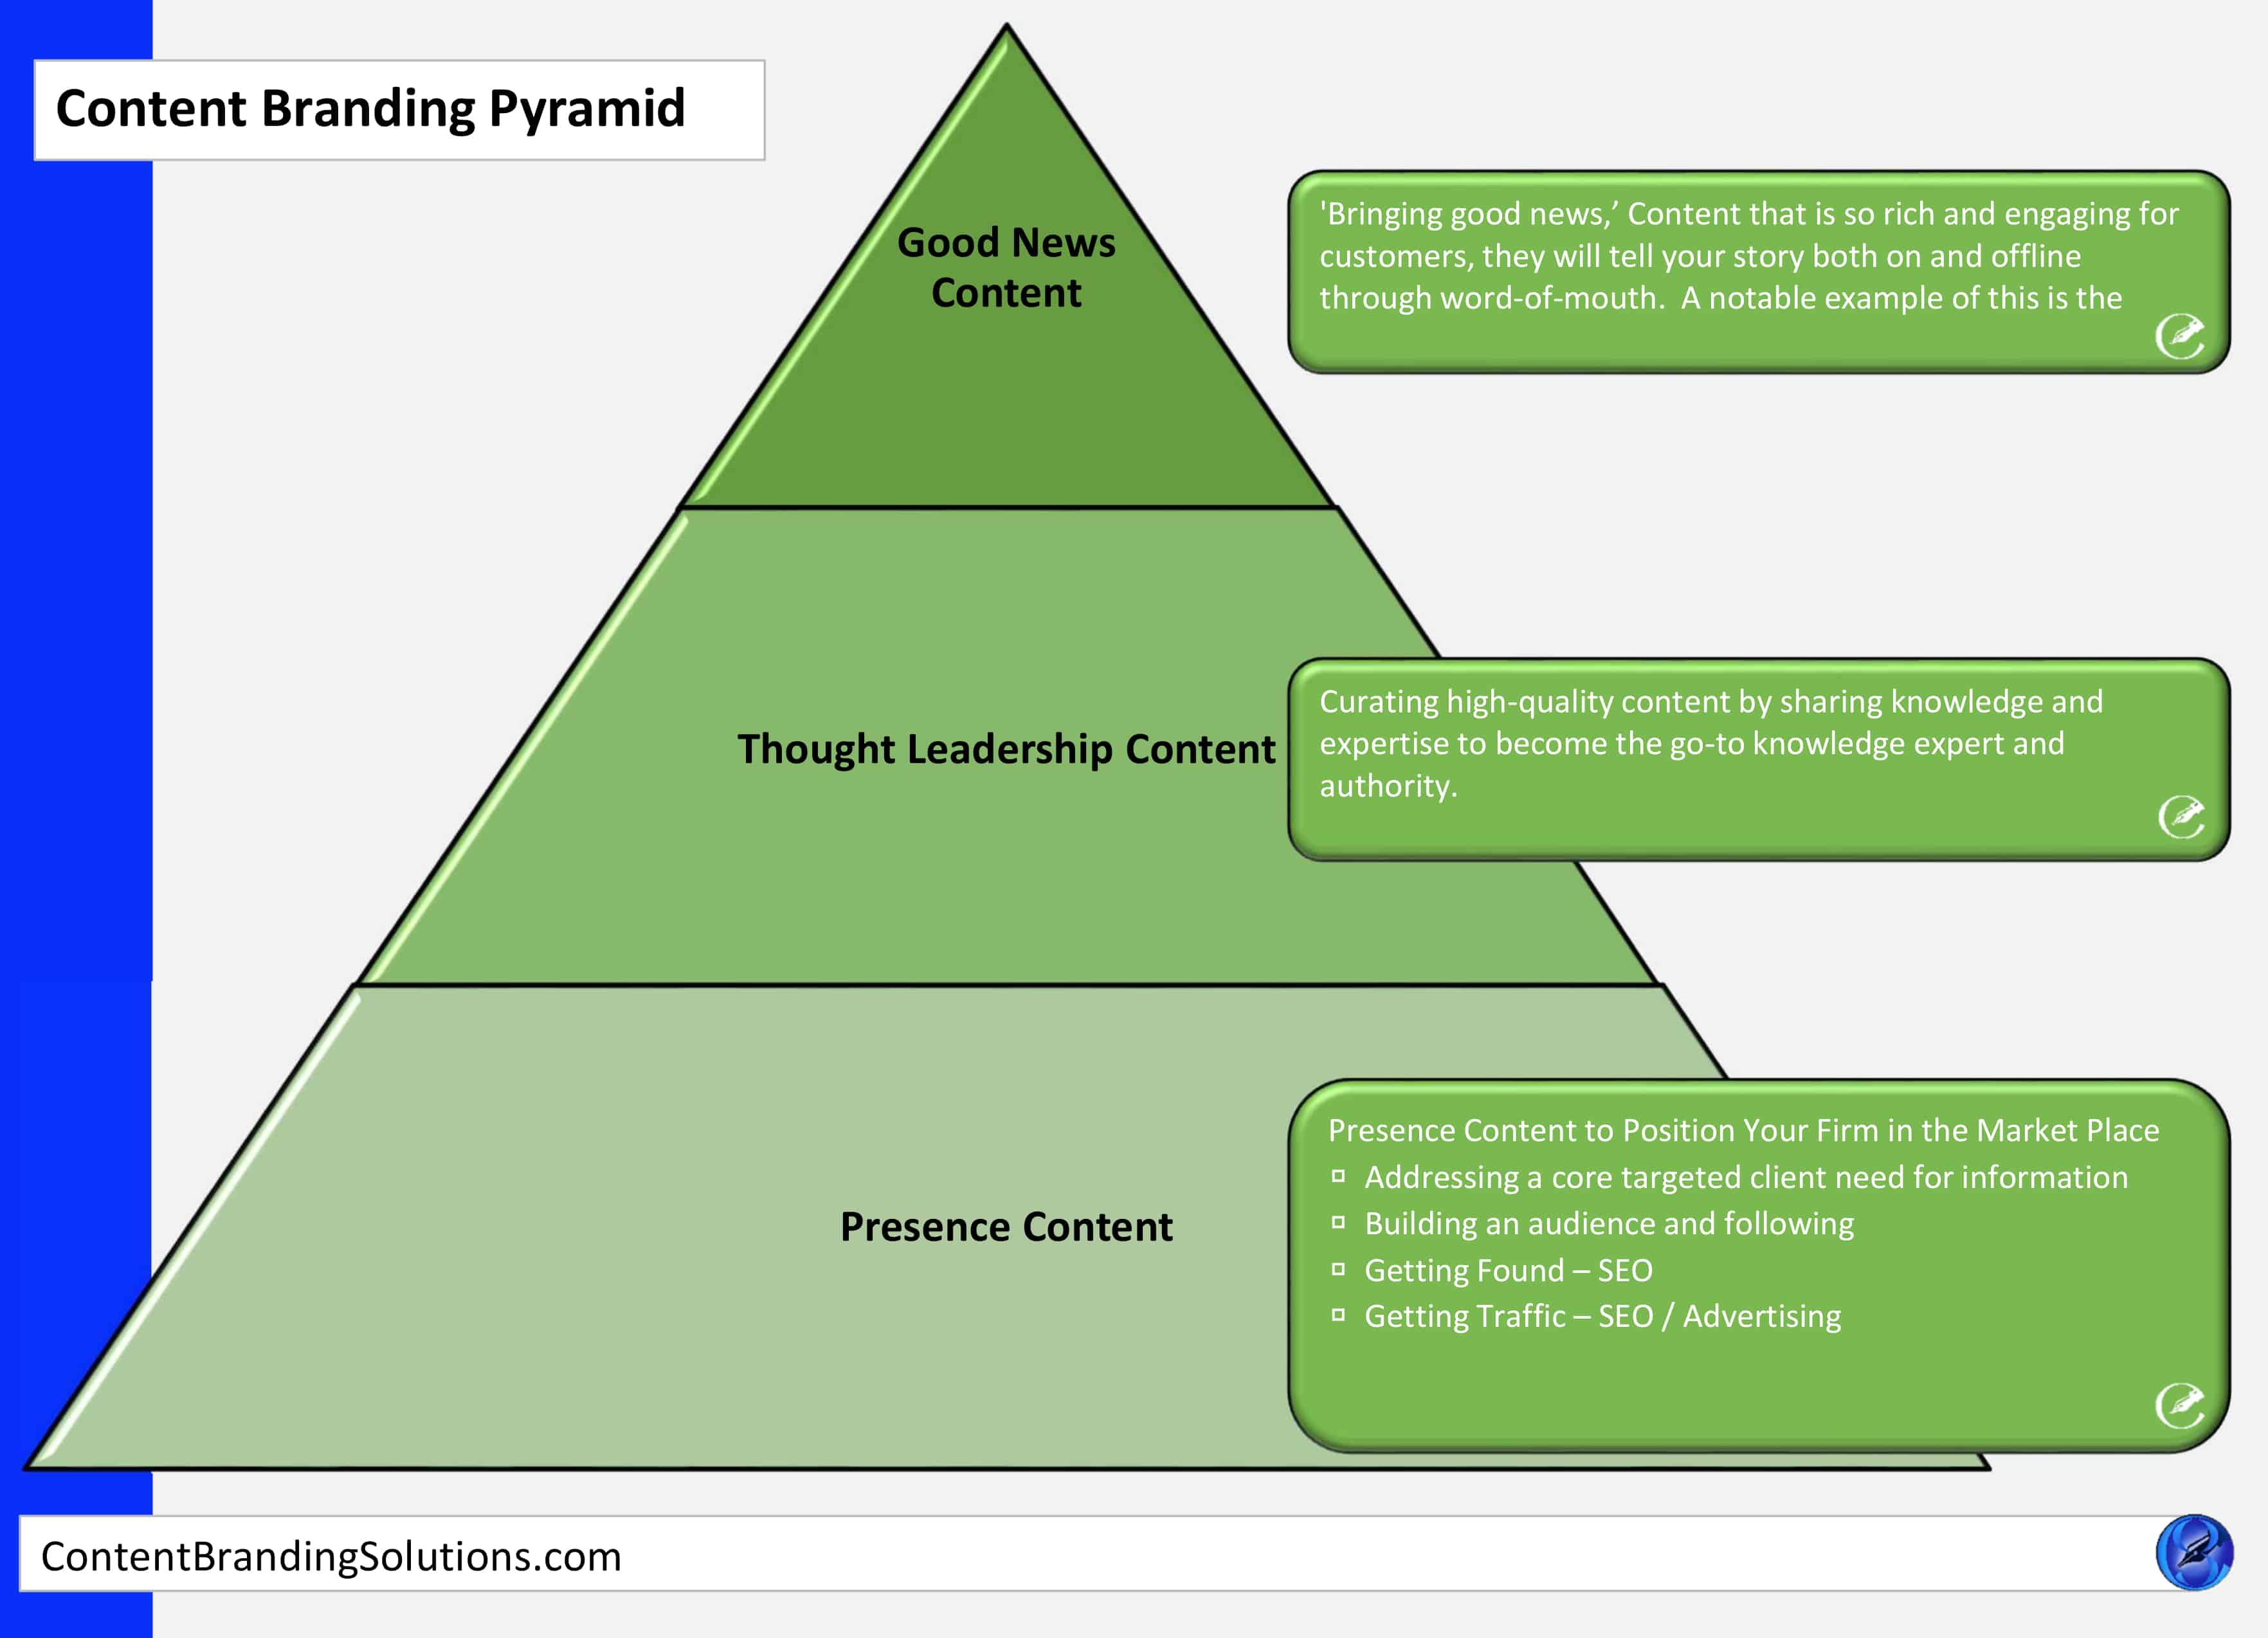 Find out more about the The Content Branding Pyramid and Attraction Marketing Copywriting, Content, Copy , Website Development, Website Design,  SEO, Graphics, and Infographics Services by Content Branding Solutions is a digital marketing company specializing in Website Design and Website Development Services Search Engine Optimization, SEO, Graphics, and Infographics in Denver CO